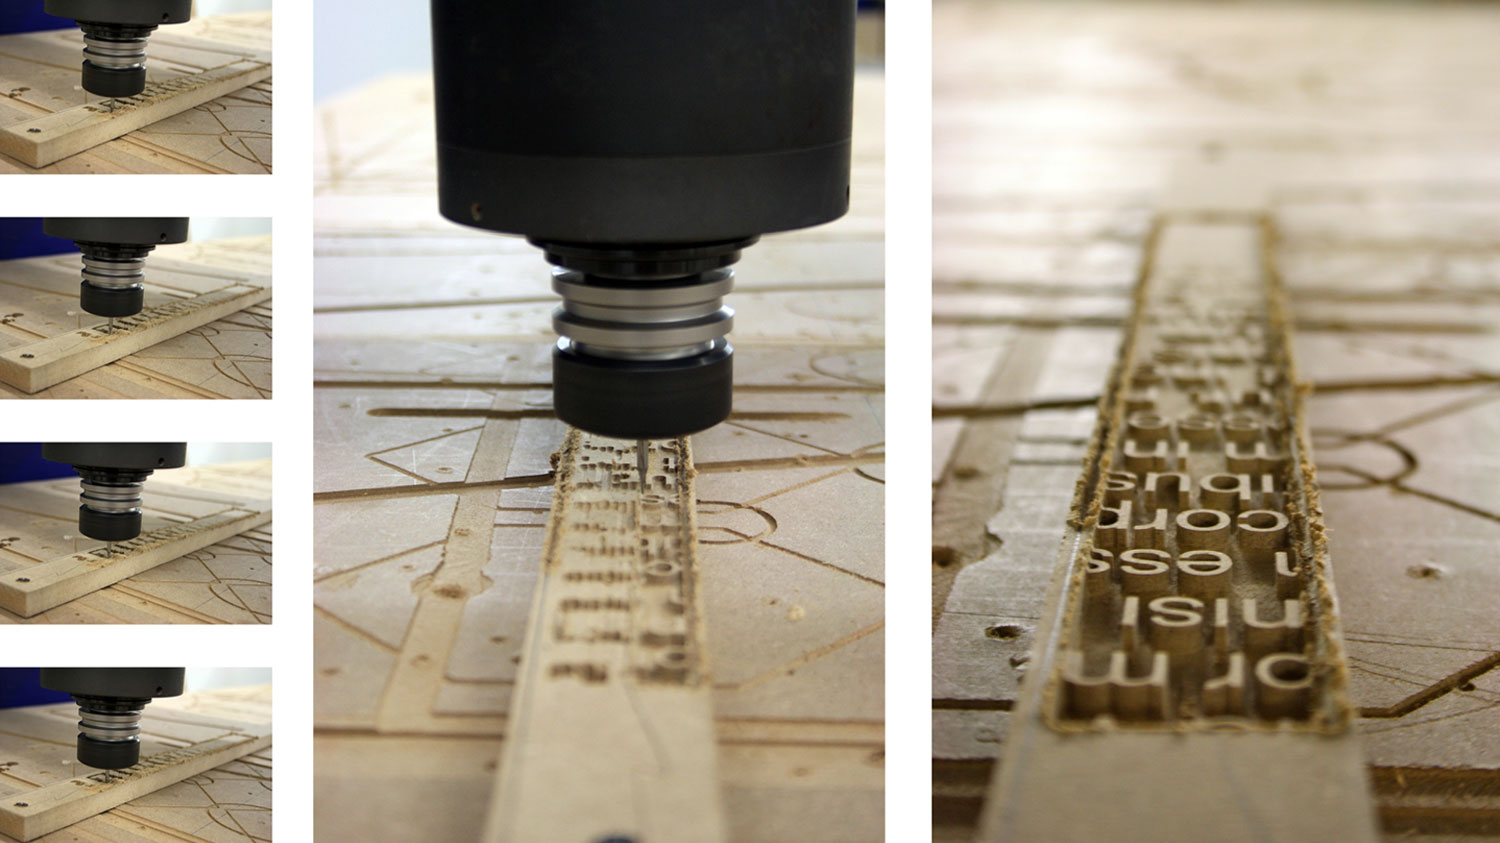 CNC routing tests using different diameter bits